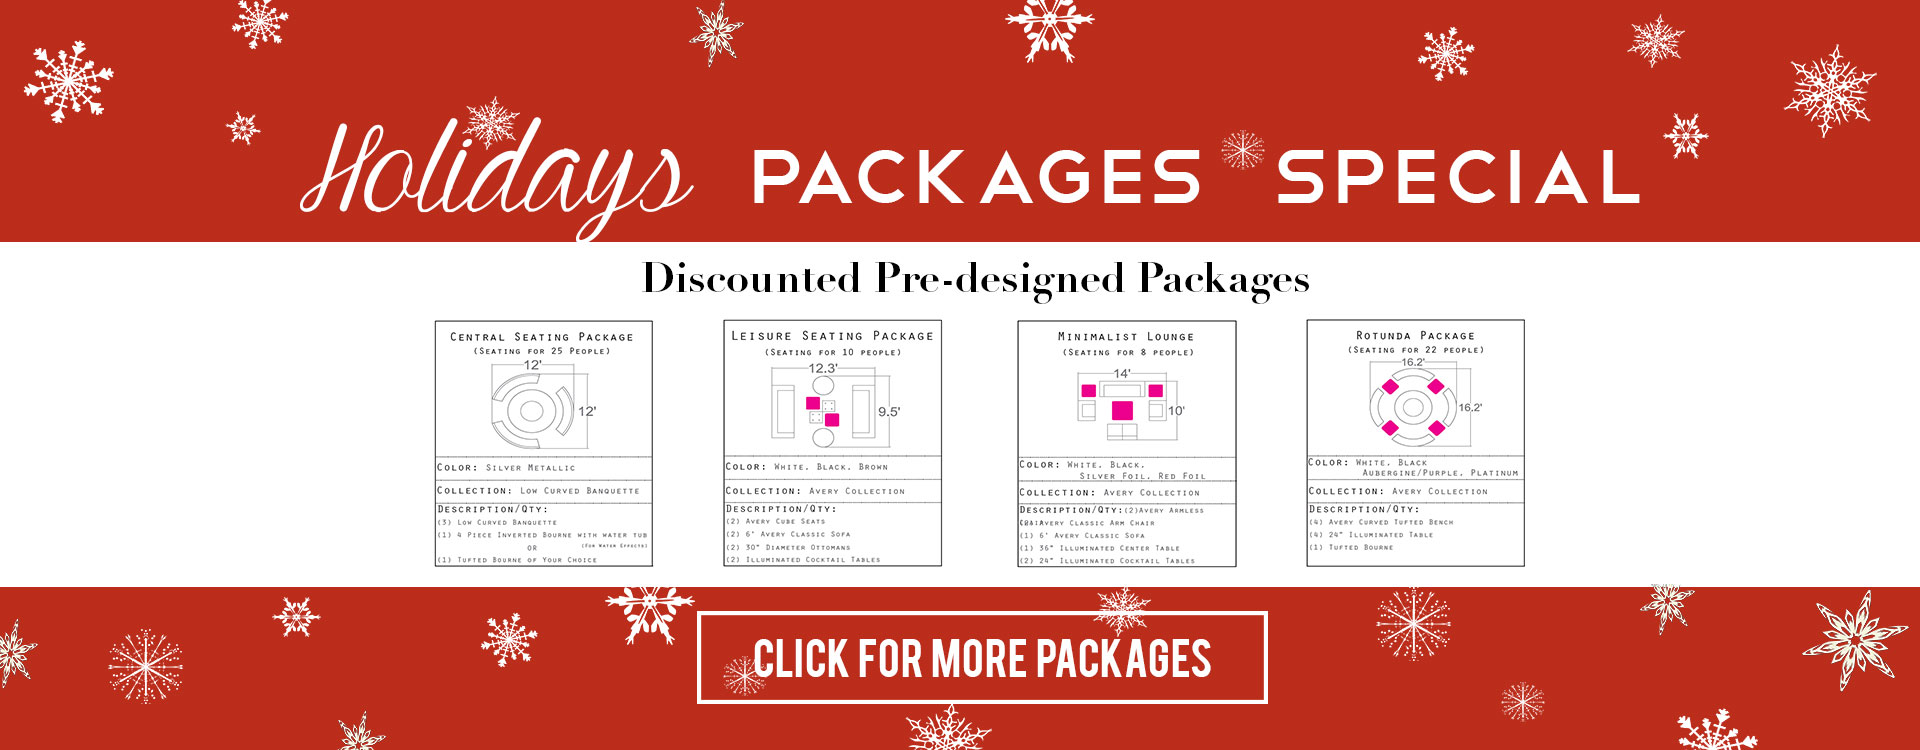 Holiday-Packages-Special